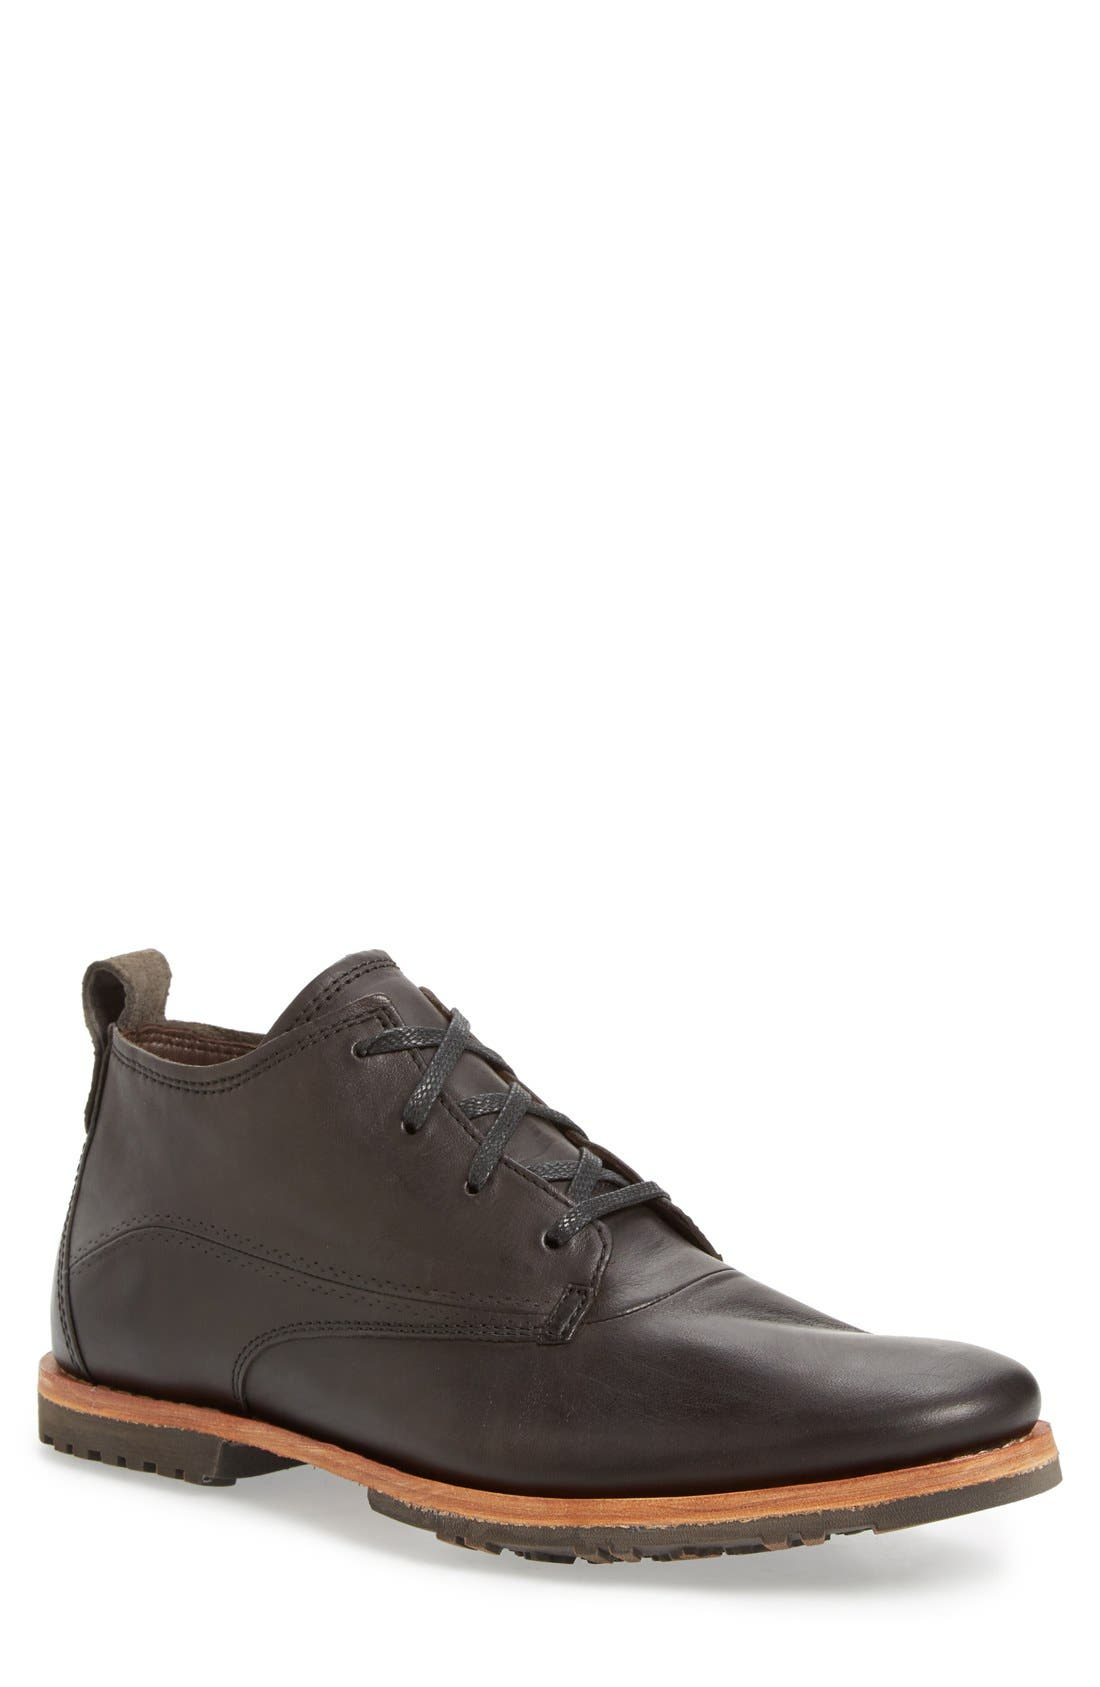 Main Image - Timberland 'Bardstown' Chukka Boot (Men)